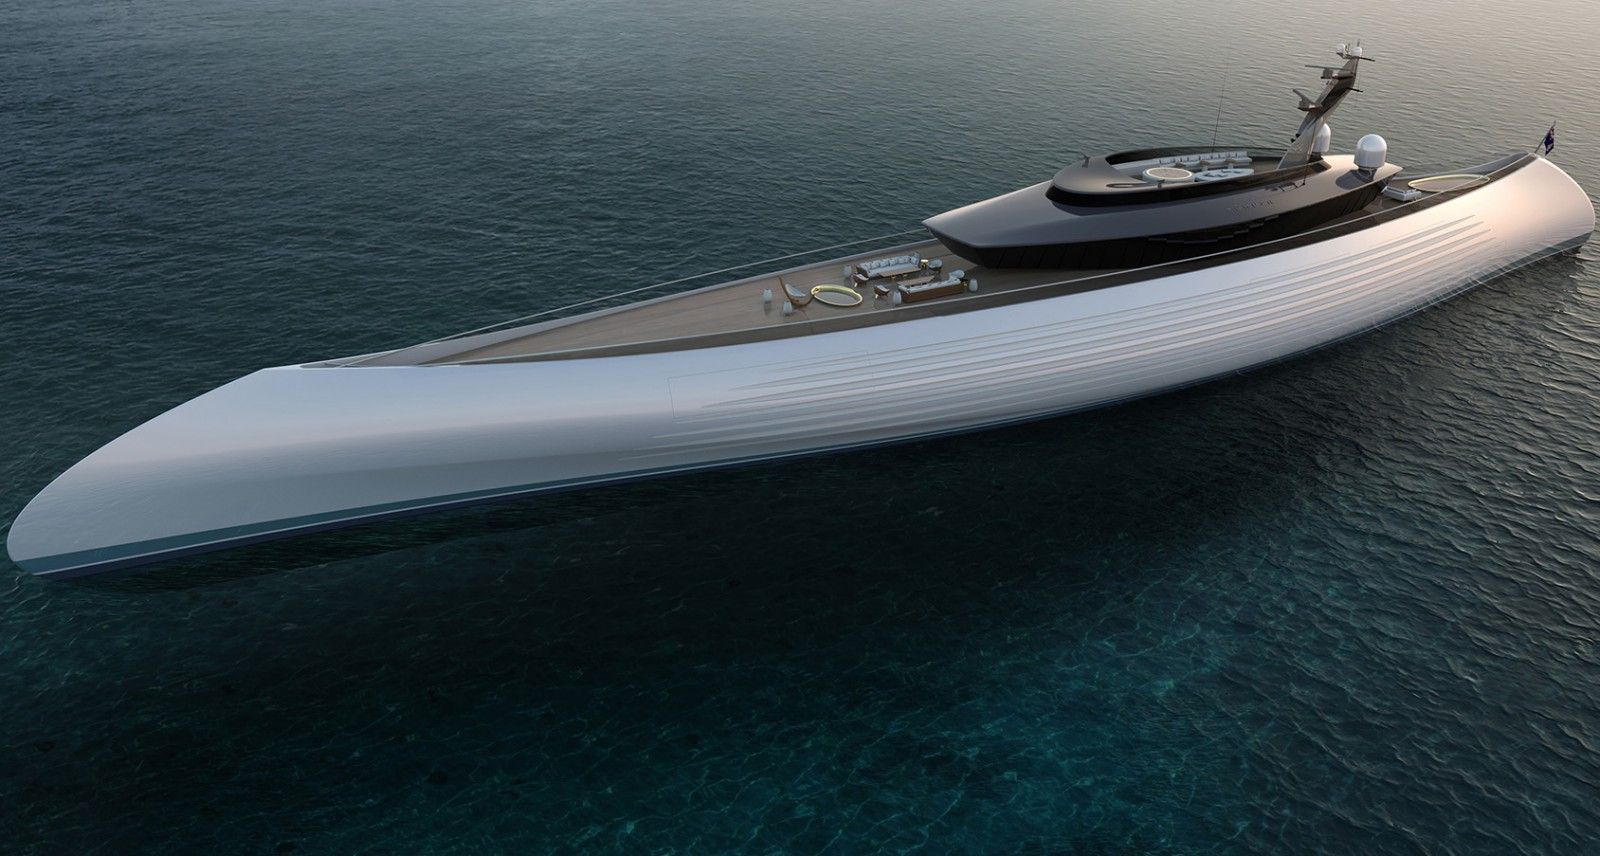 This 377-Foot Superyacht Is Actually a Souped-Up Polynesian Canoe